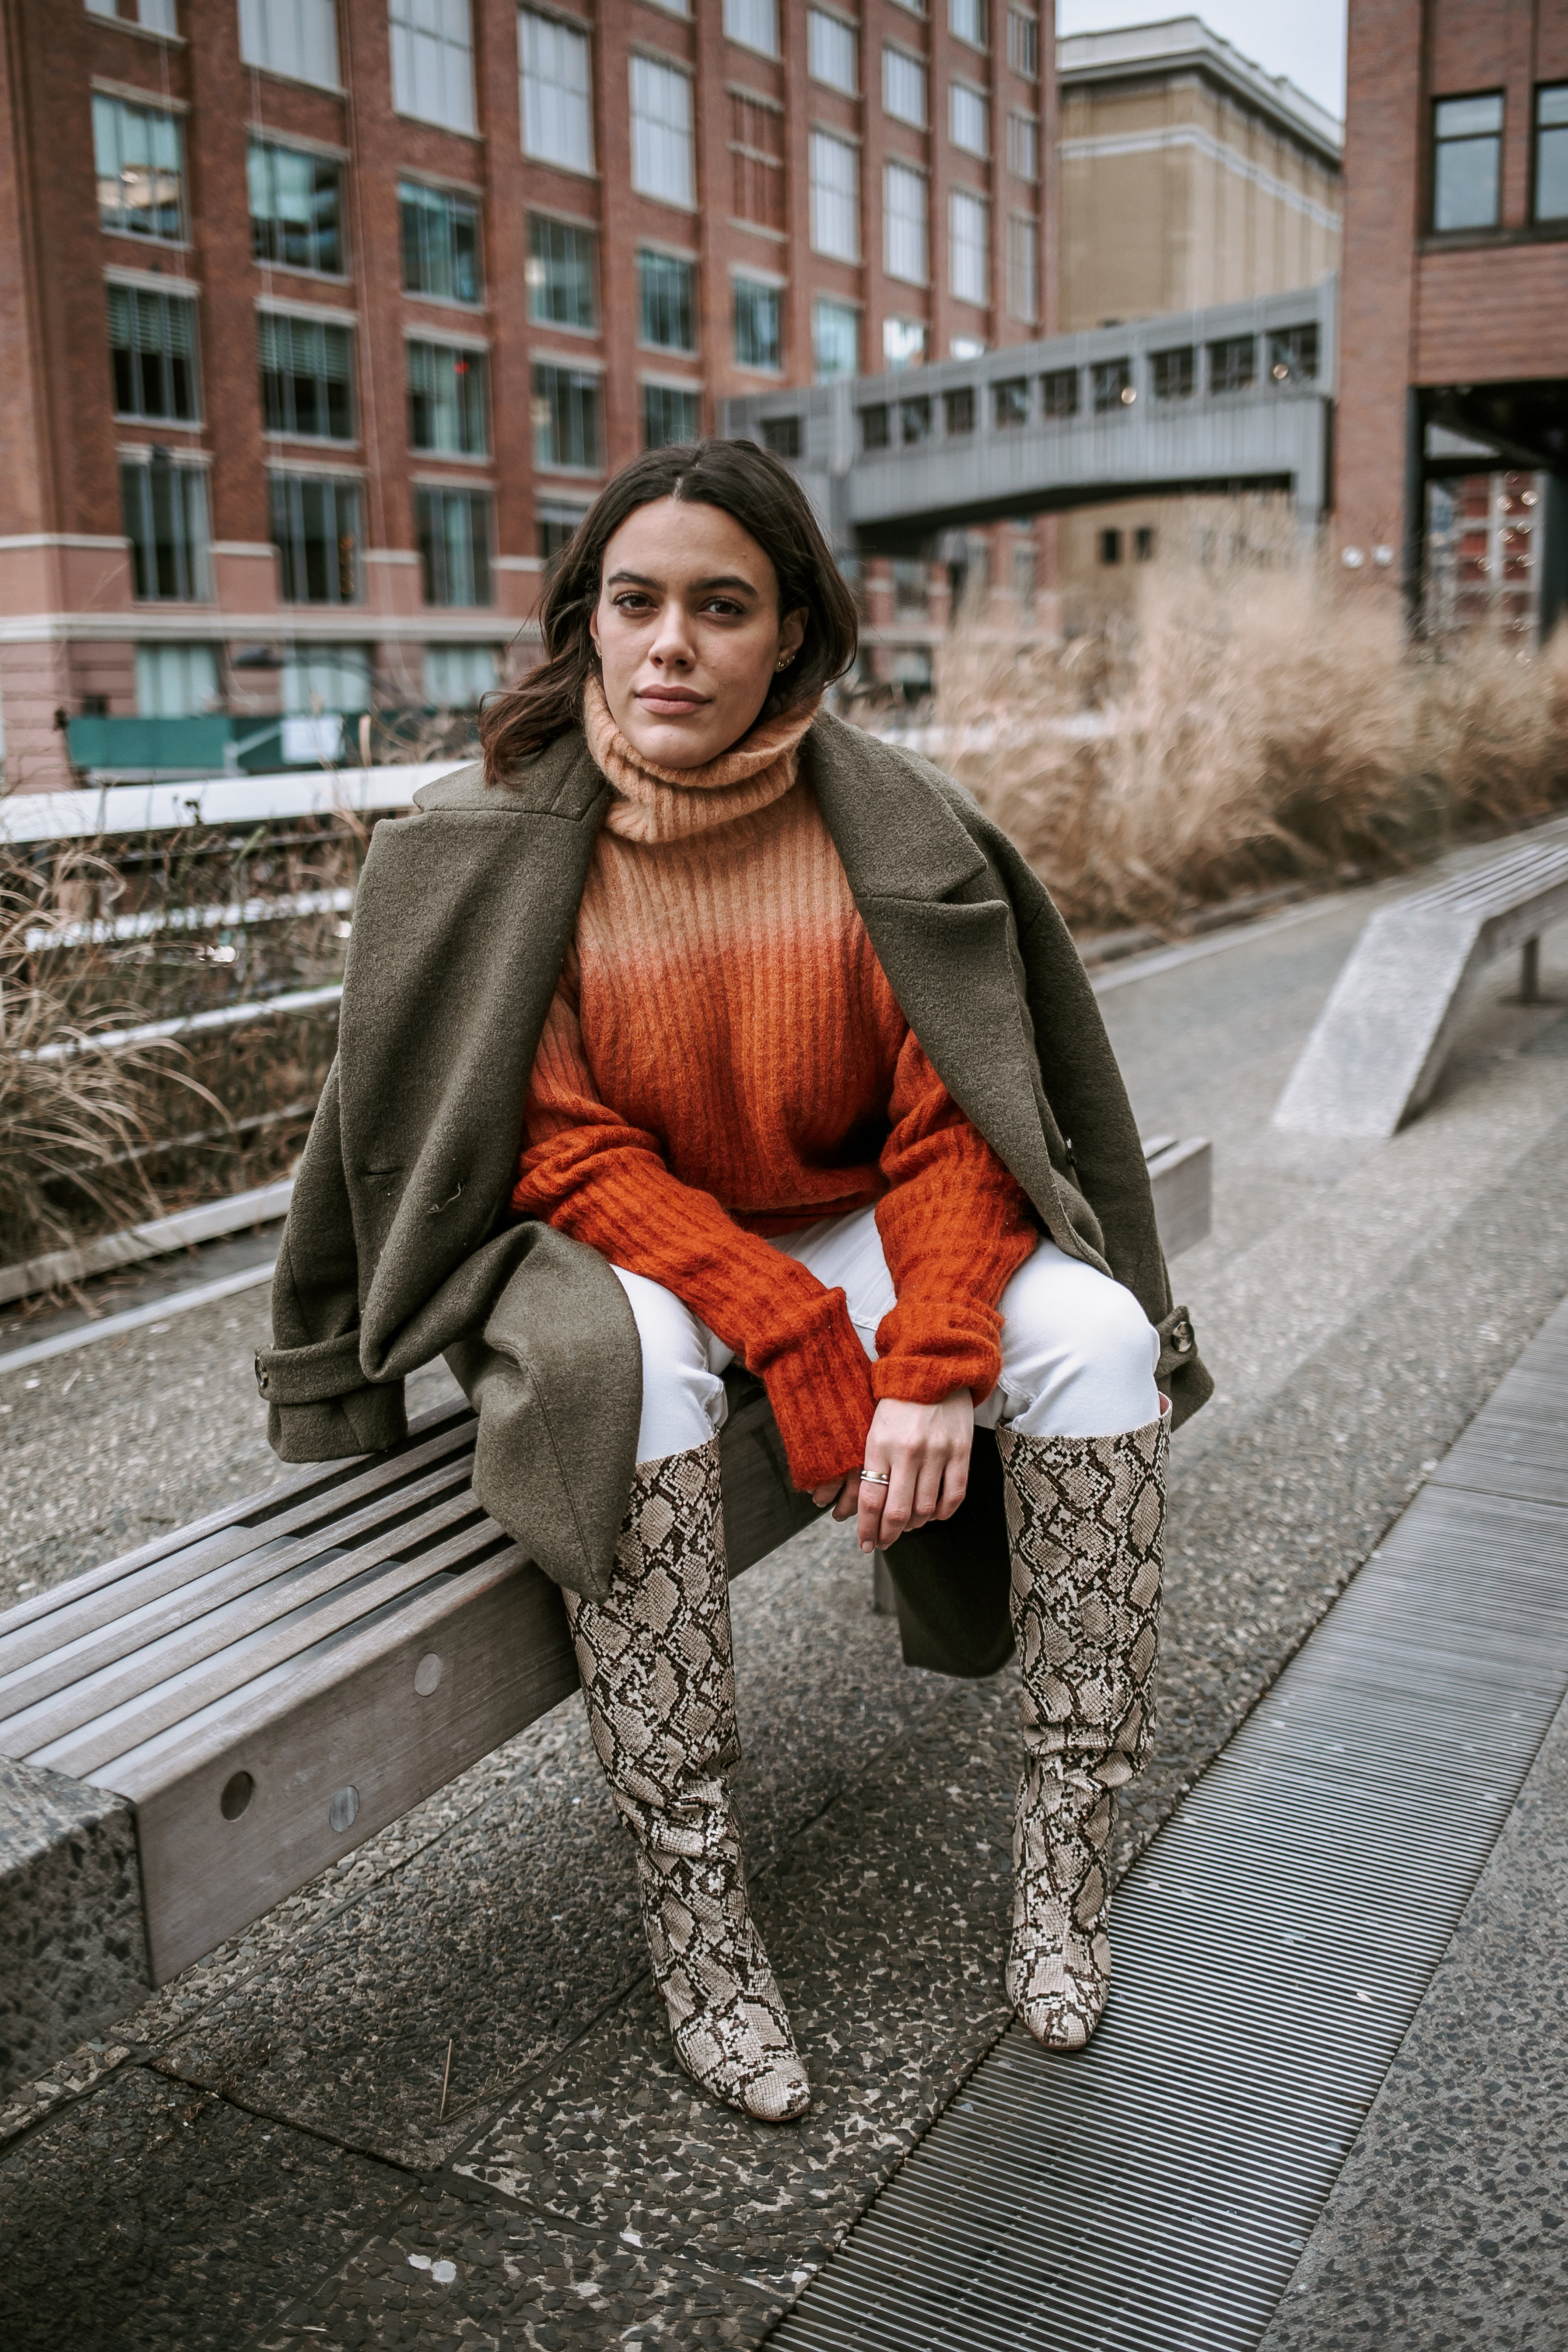 how-to-style-zara-snakeskin-knee-high-boots-latina-new-york-city-fashion-blogger-style-operator-winter-fashion.jpg